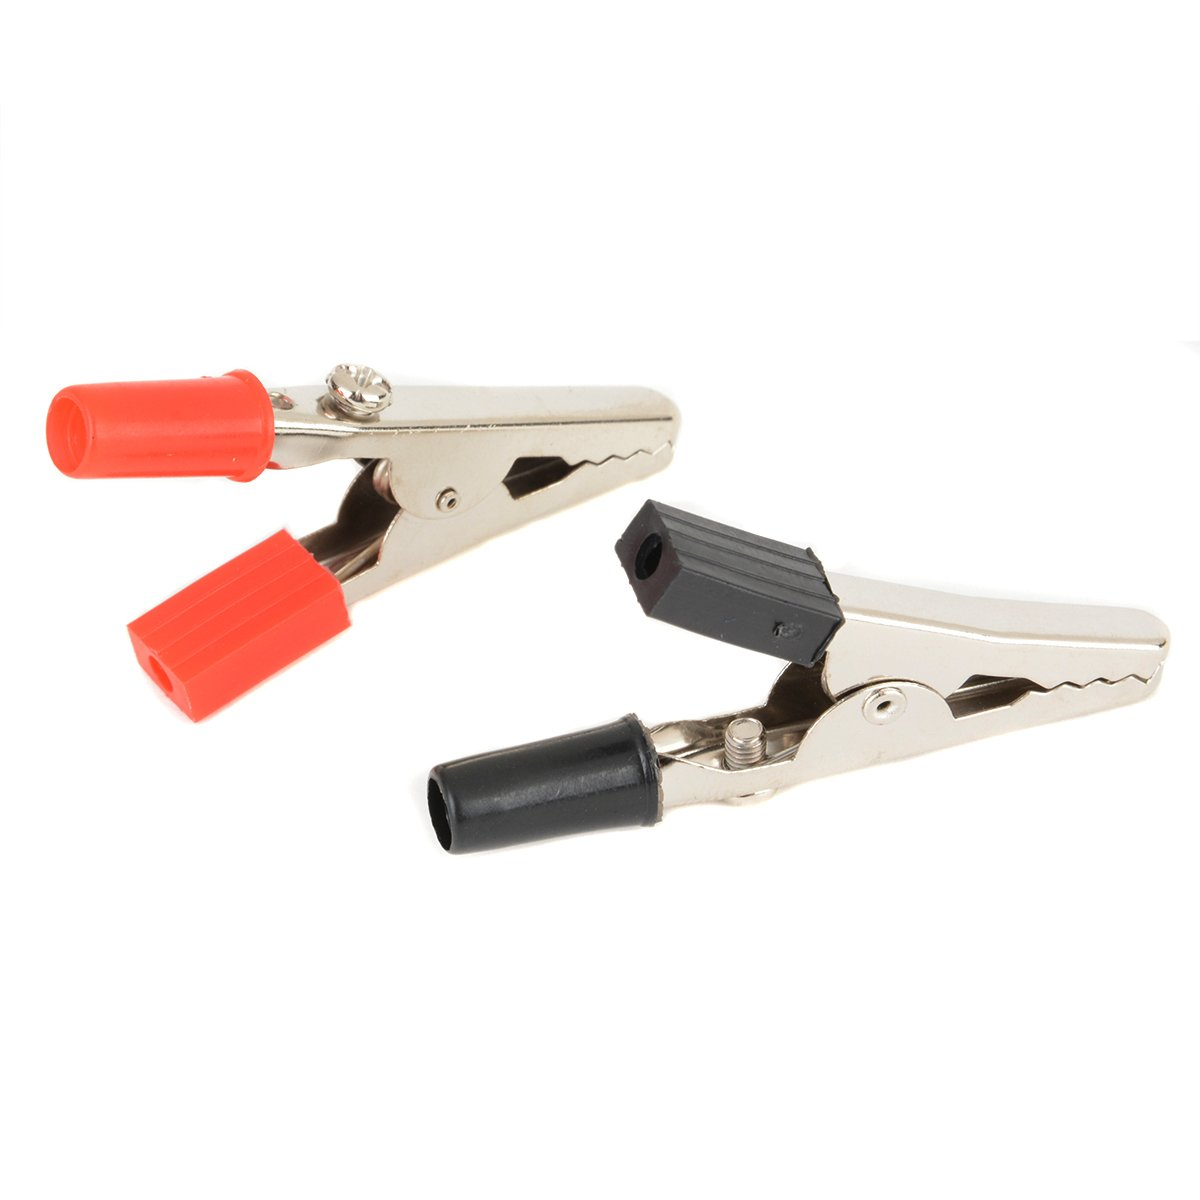 10 x 52mm Crocodile Clips Insulated Plastic Handle Cable Lead Testing Alligator Clamps